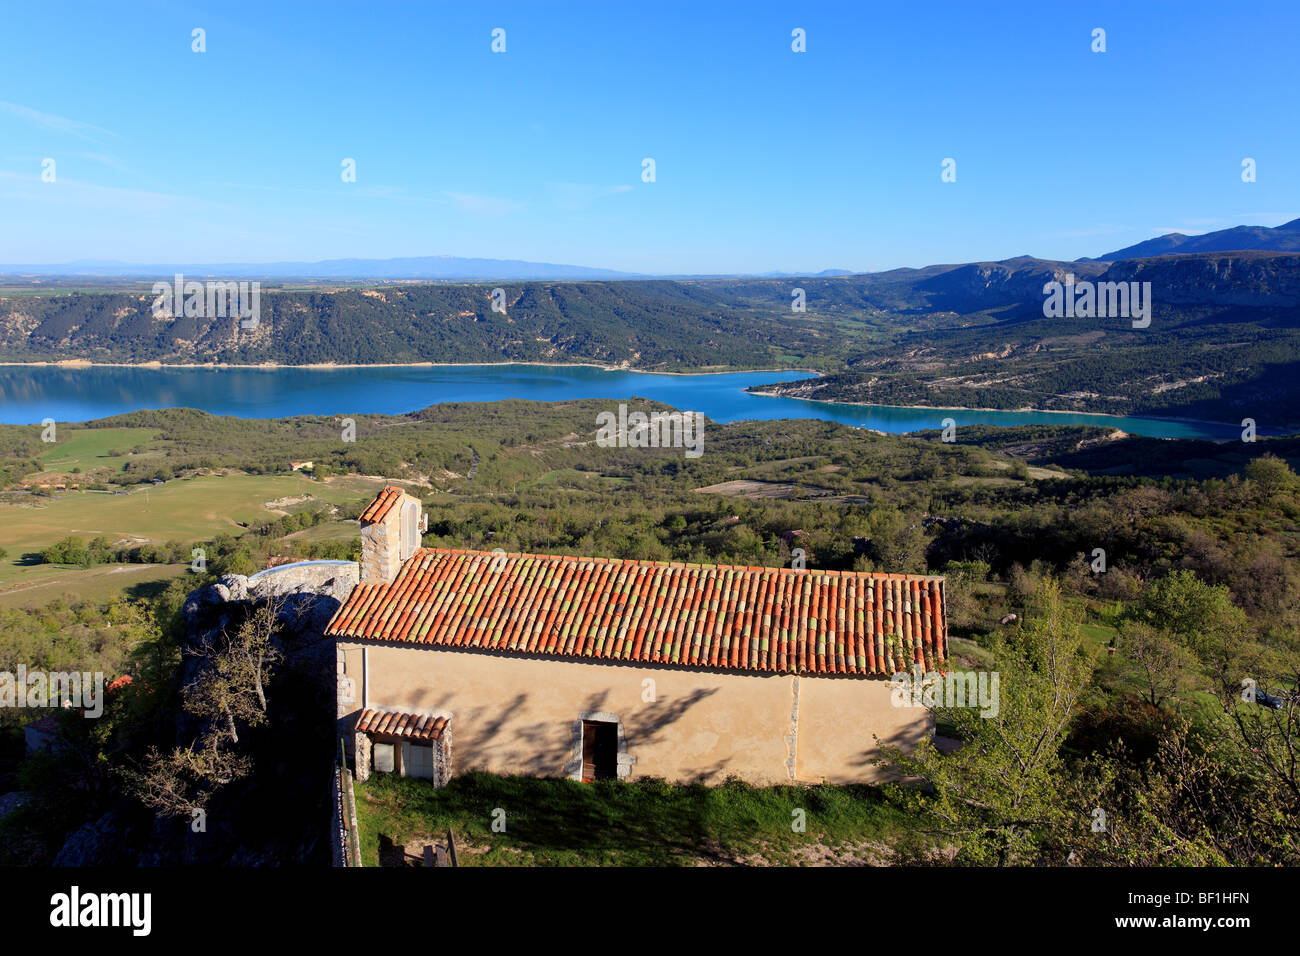 The little chapell of the village of Aiguines in the Verdon national park - Stock Image